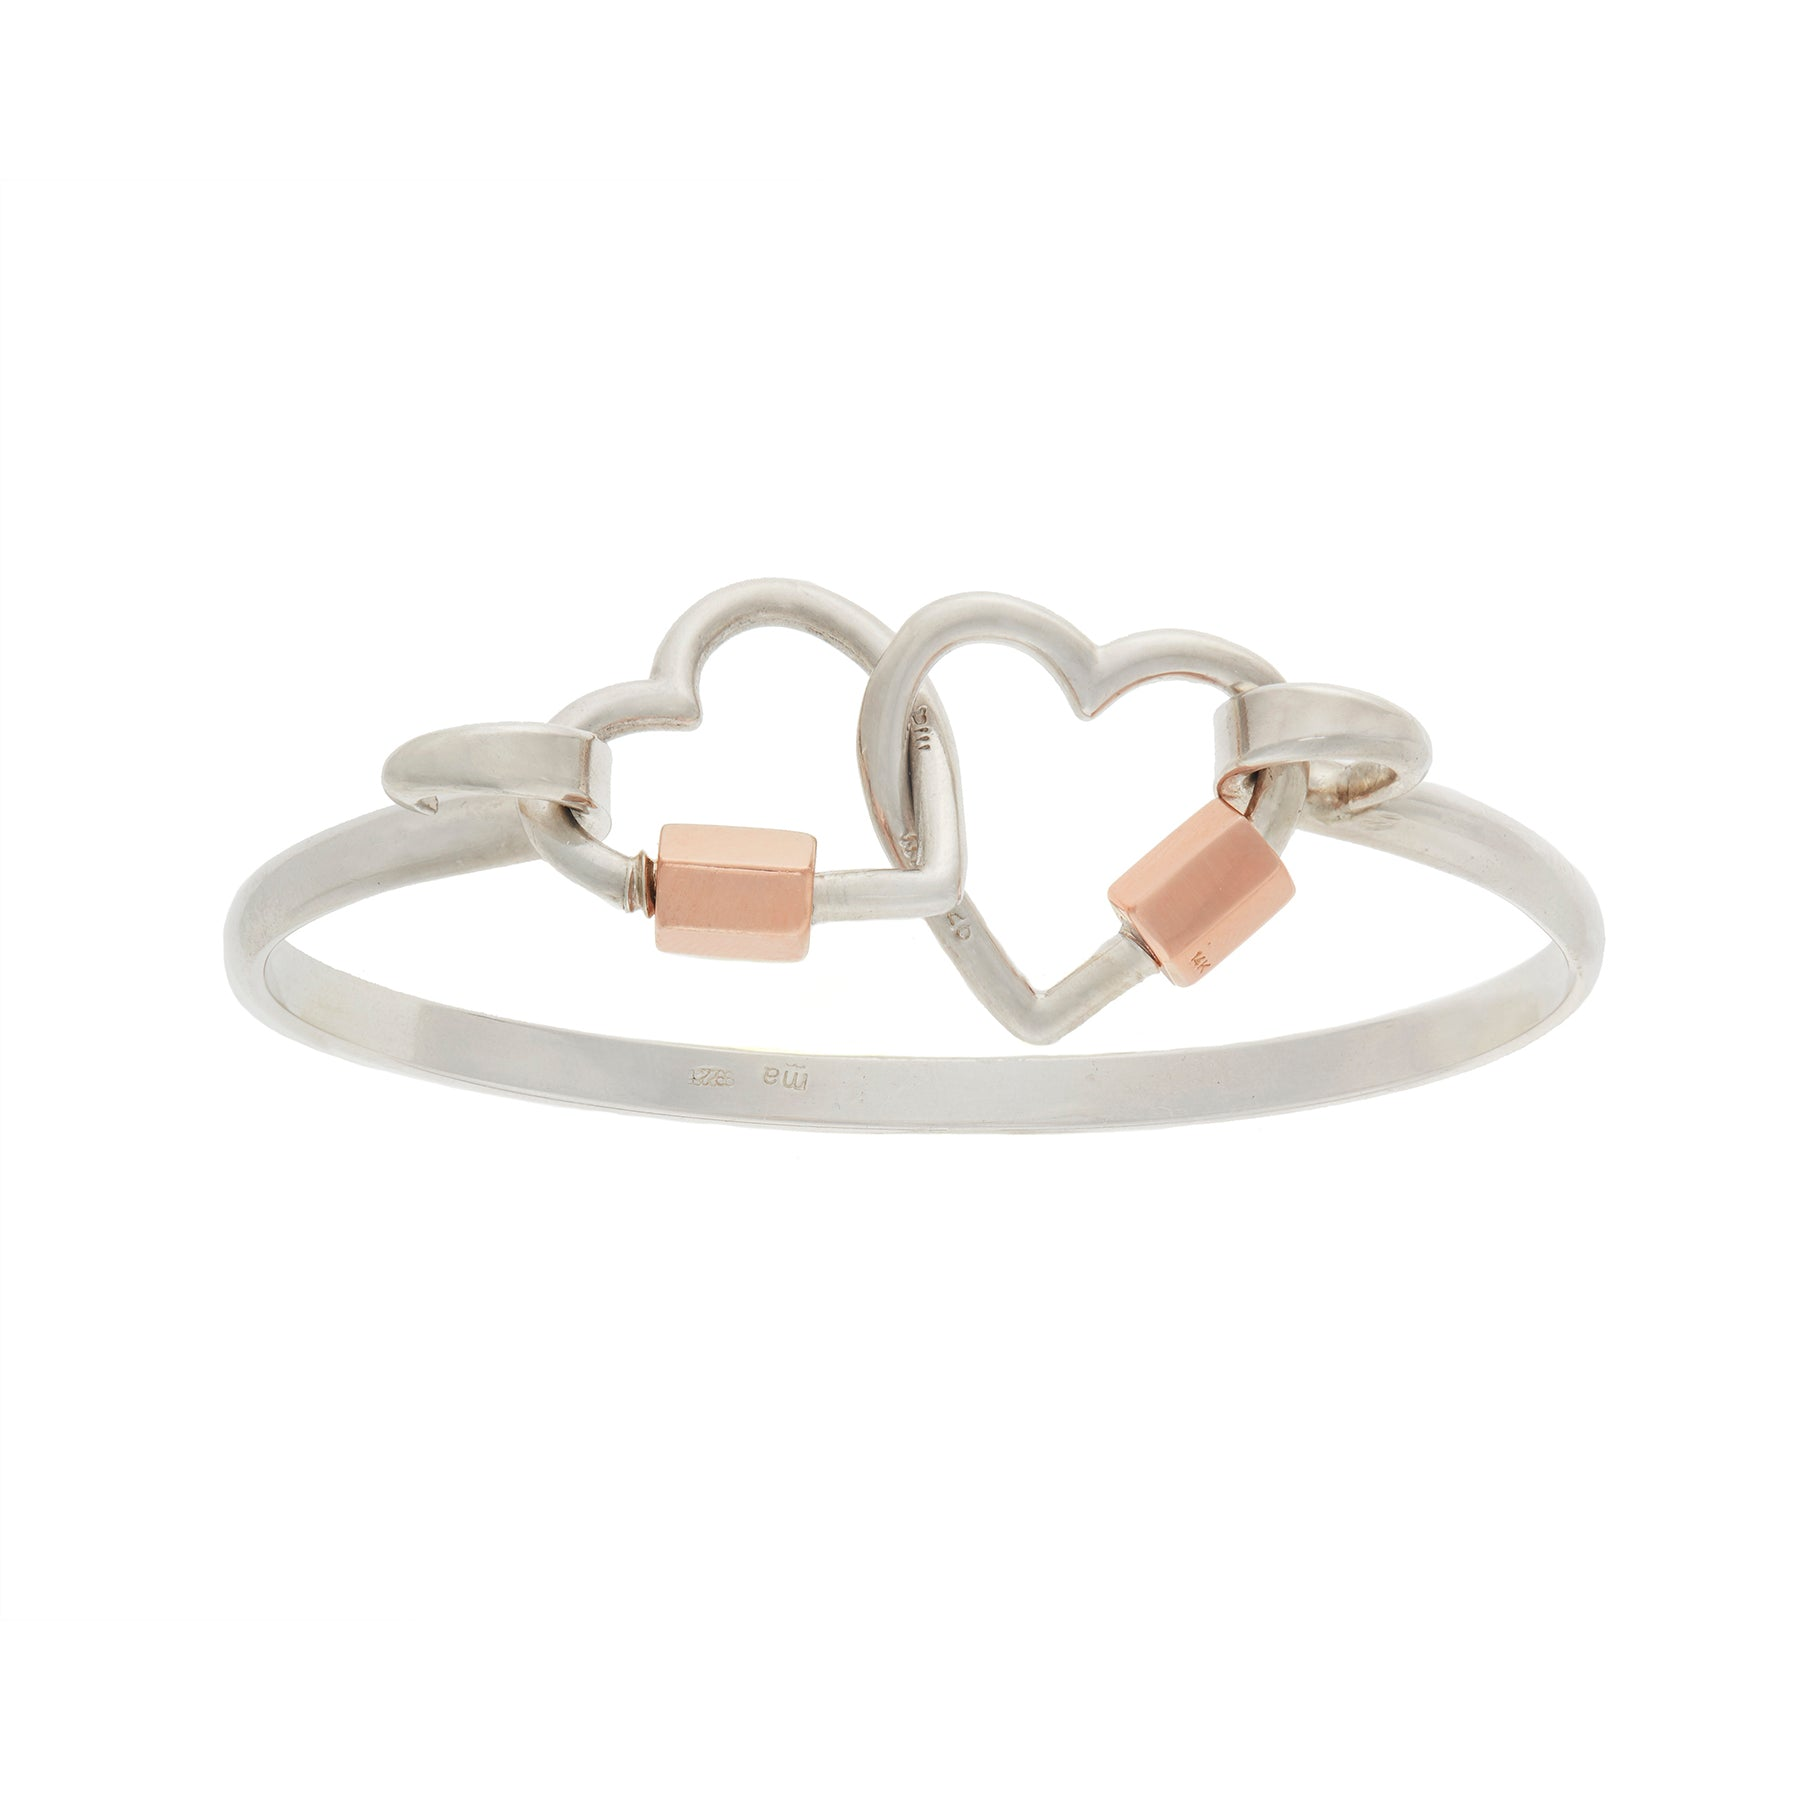 marla aaron sterling silver hardhook bracelet with 2 silver and yellow gold heart locks.